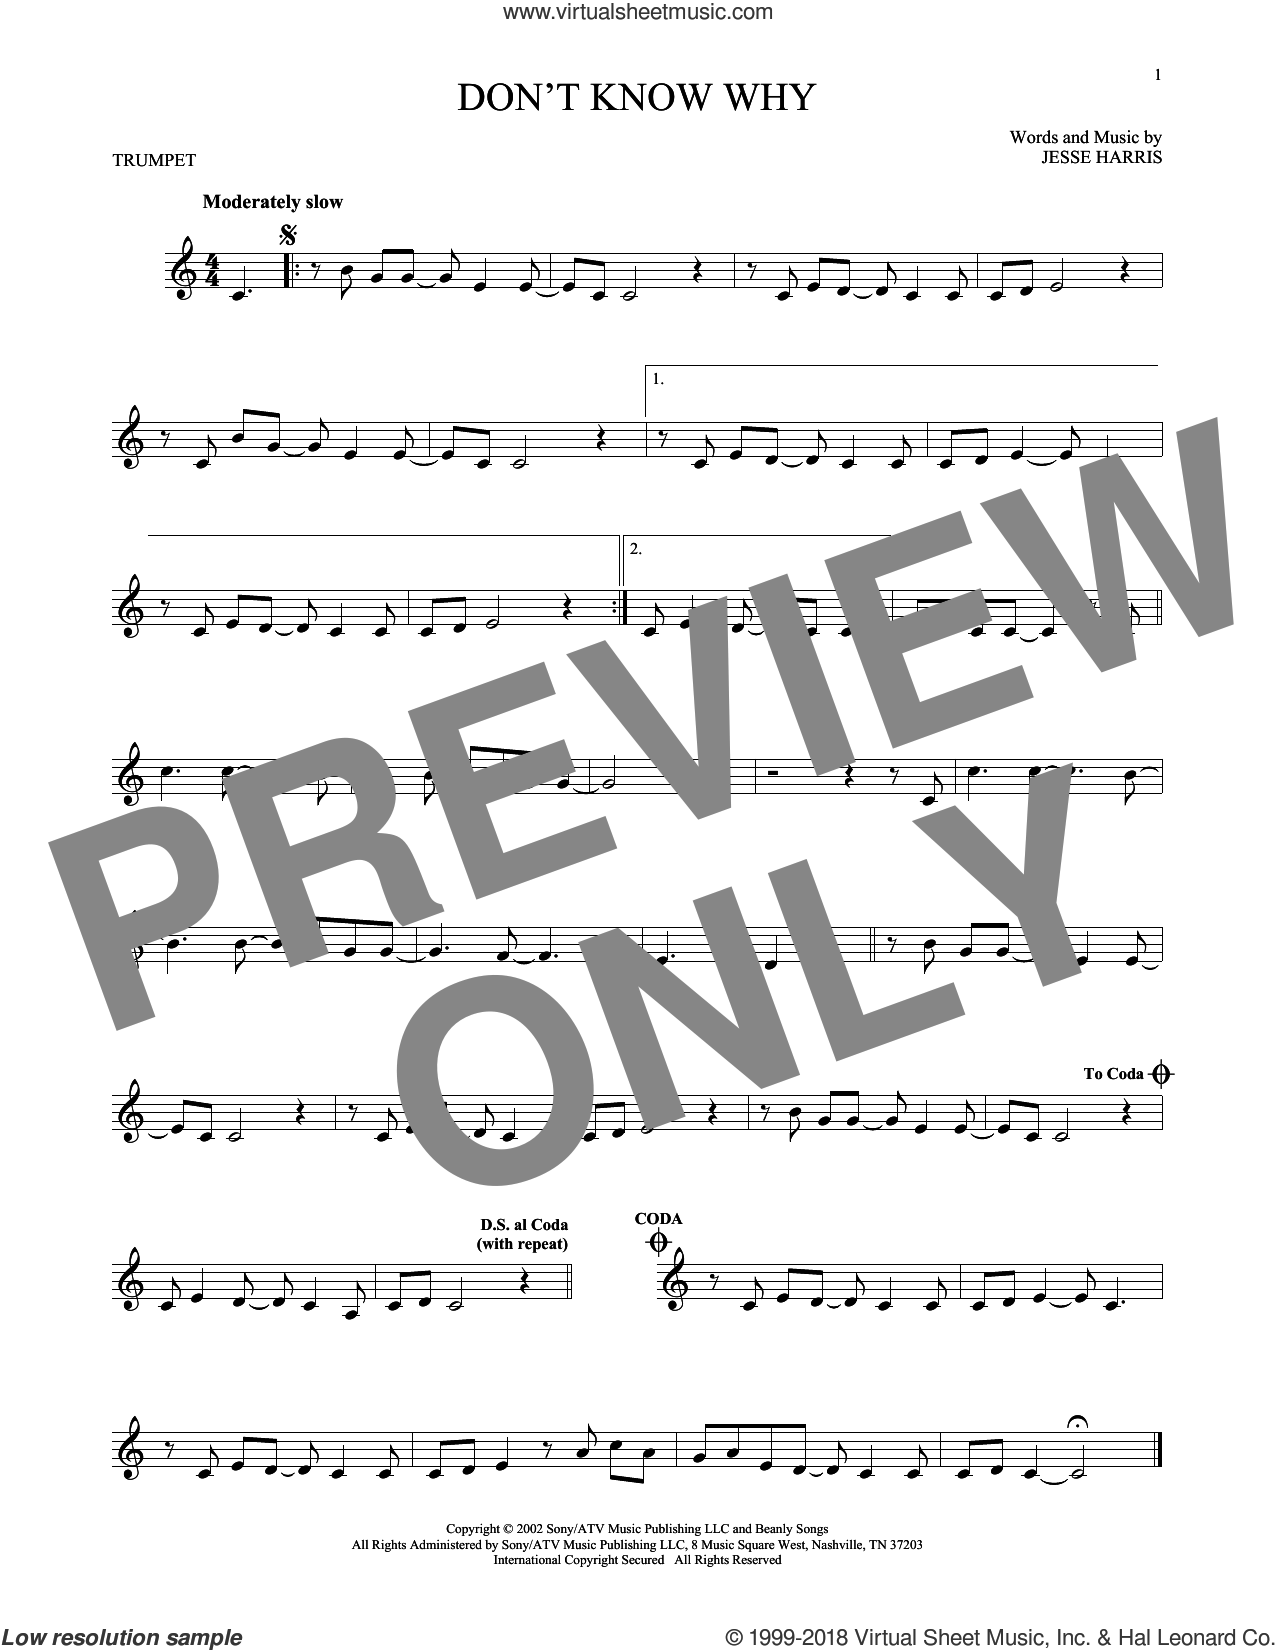 Don't Know Why sheet music for trumpet solo by Jesse Harris